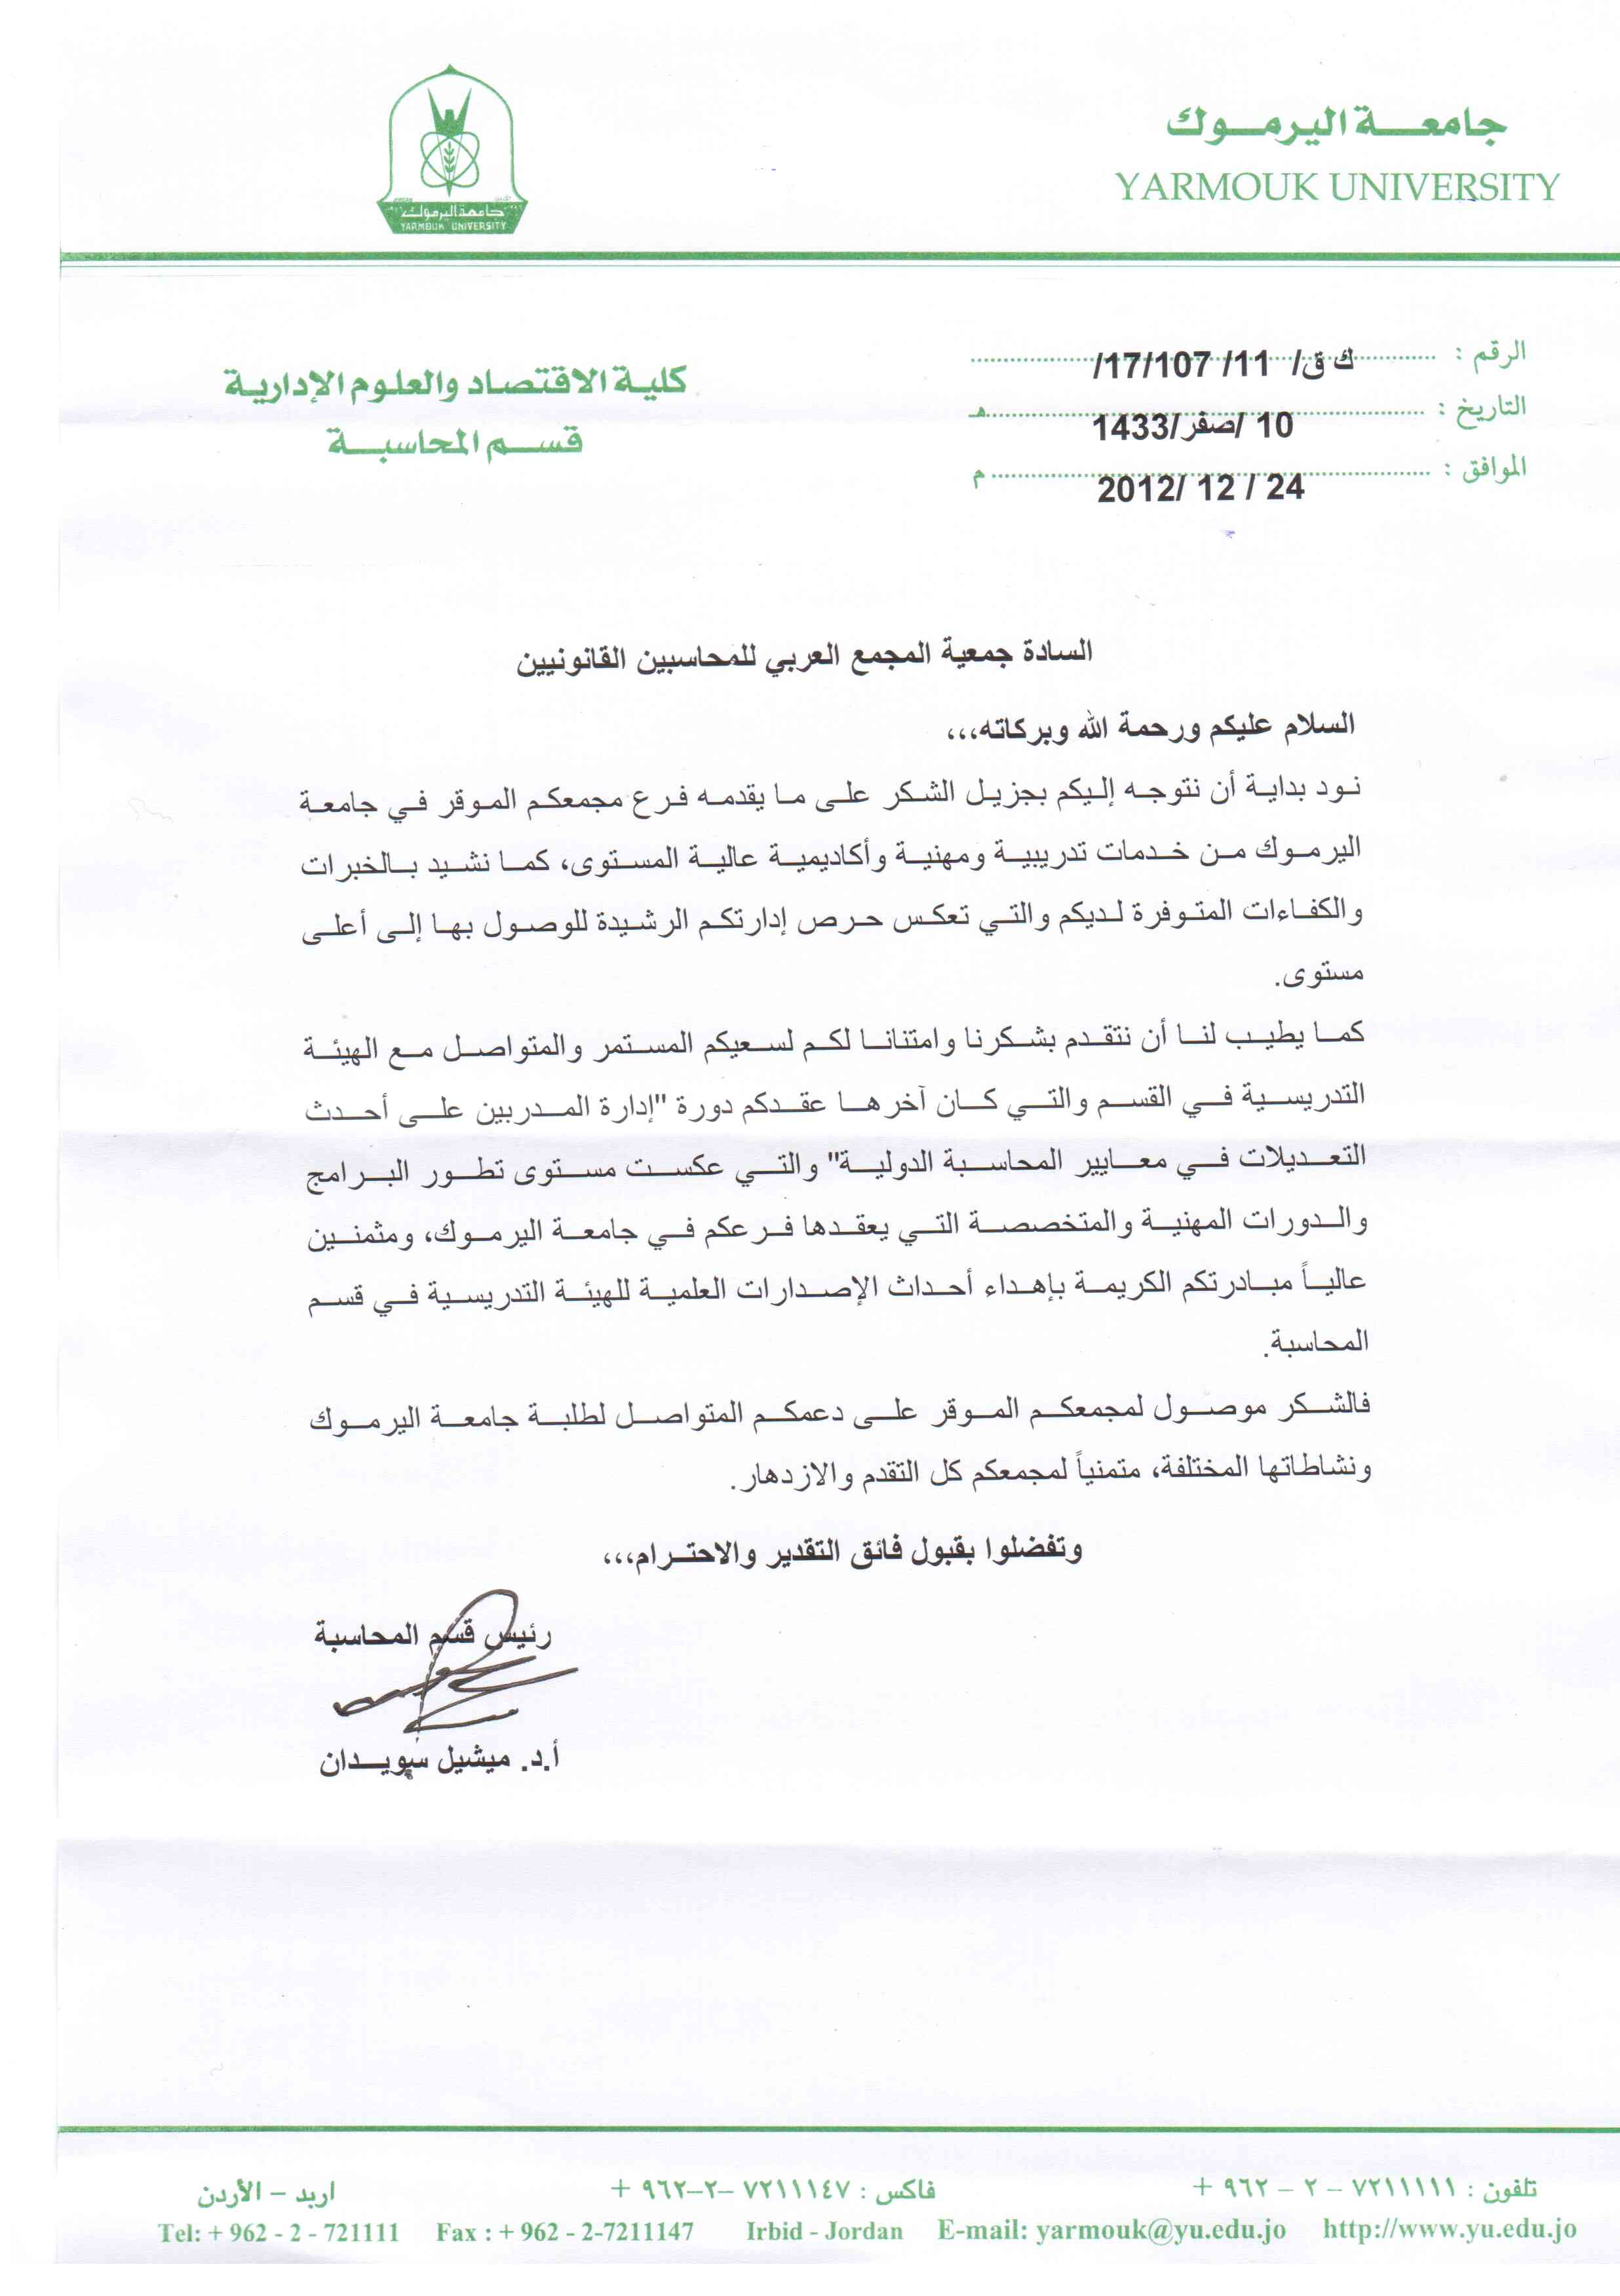 Arab society of certified accountants acpa thank you letters a thank you letter from yarmouk university irbid december aljukfo Image collections